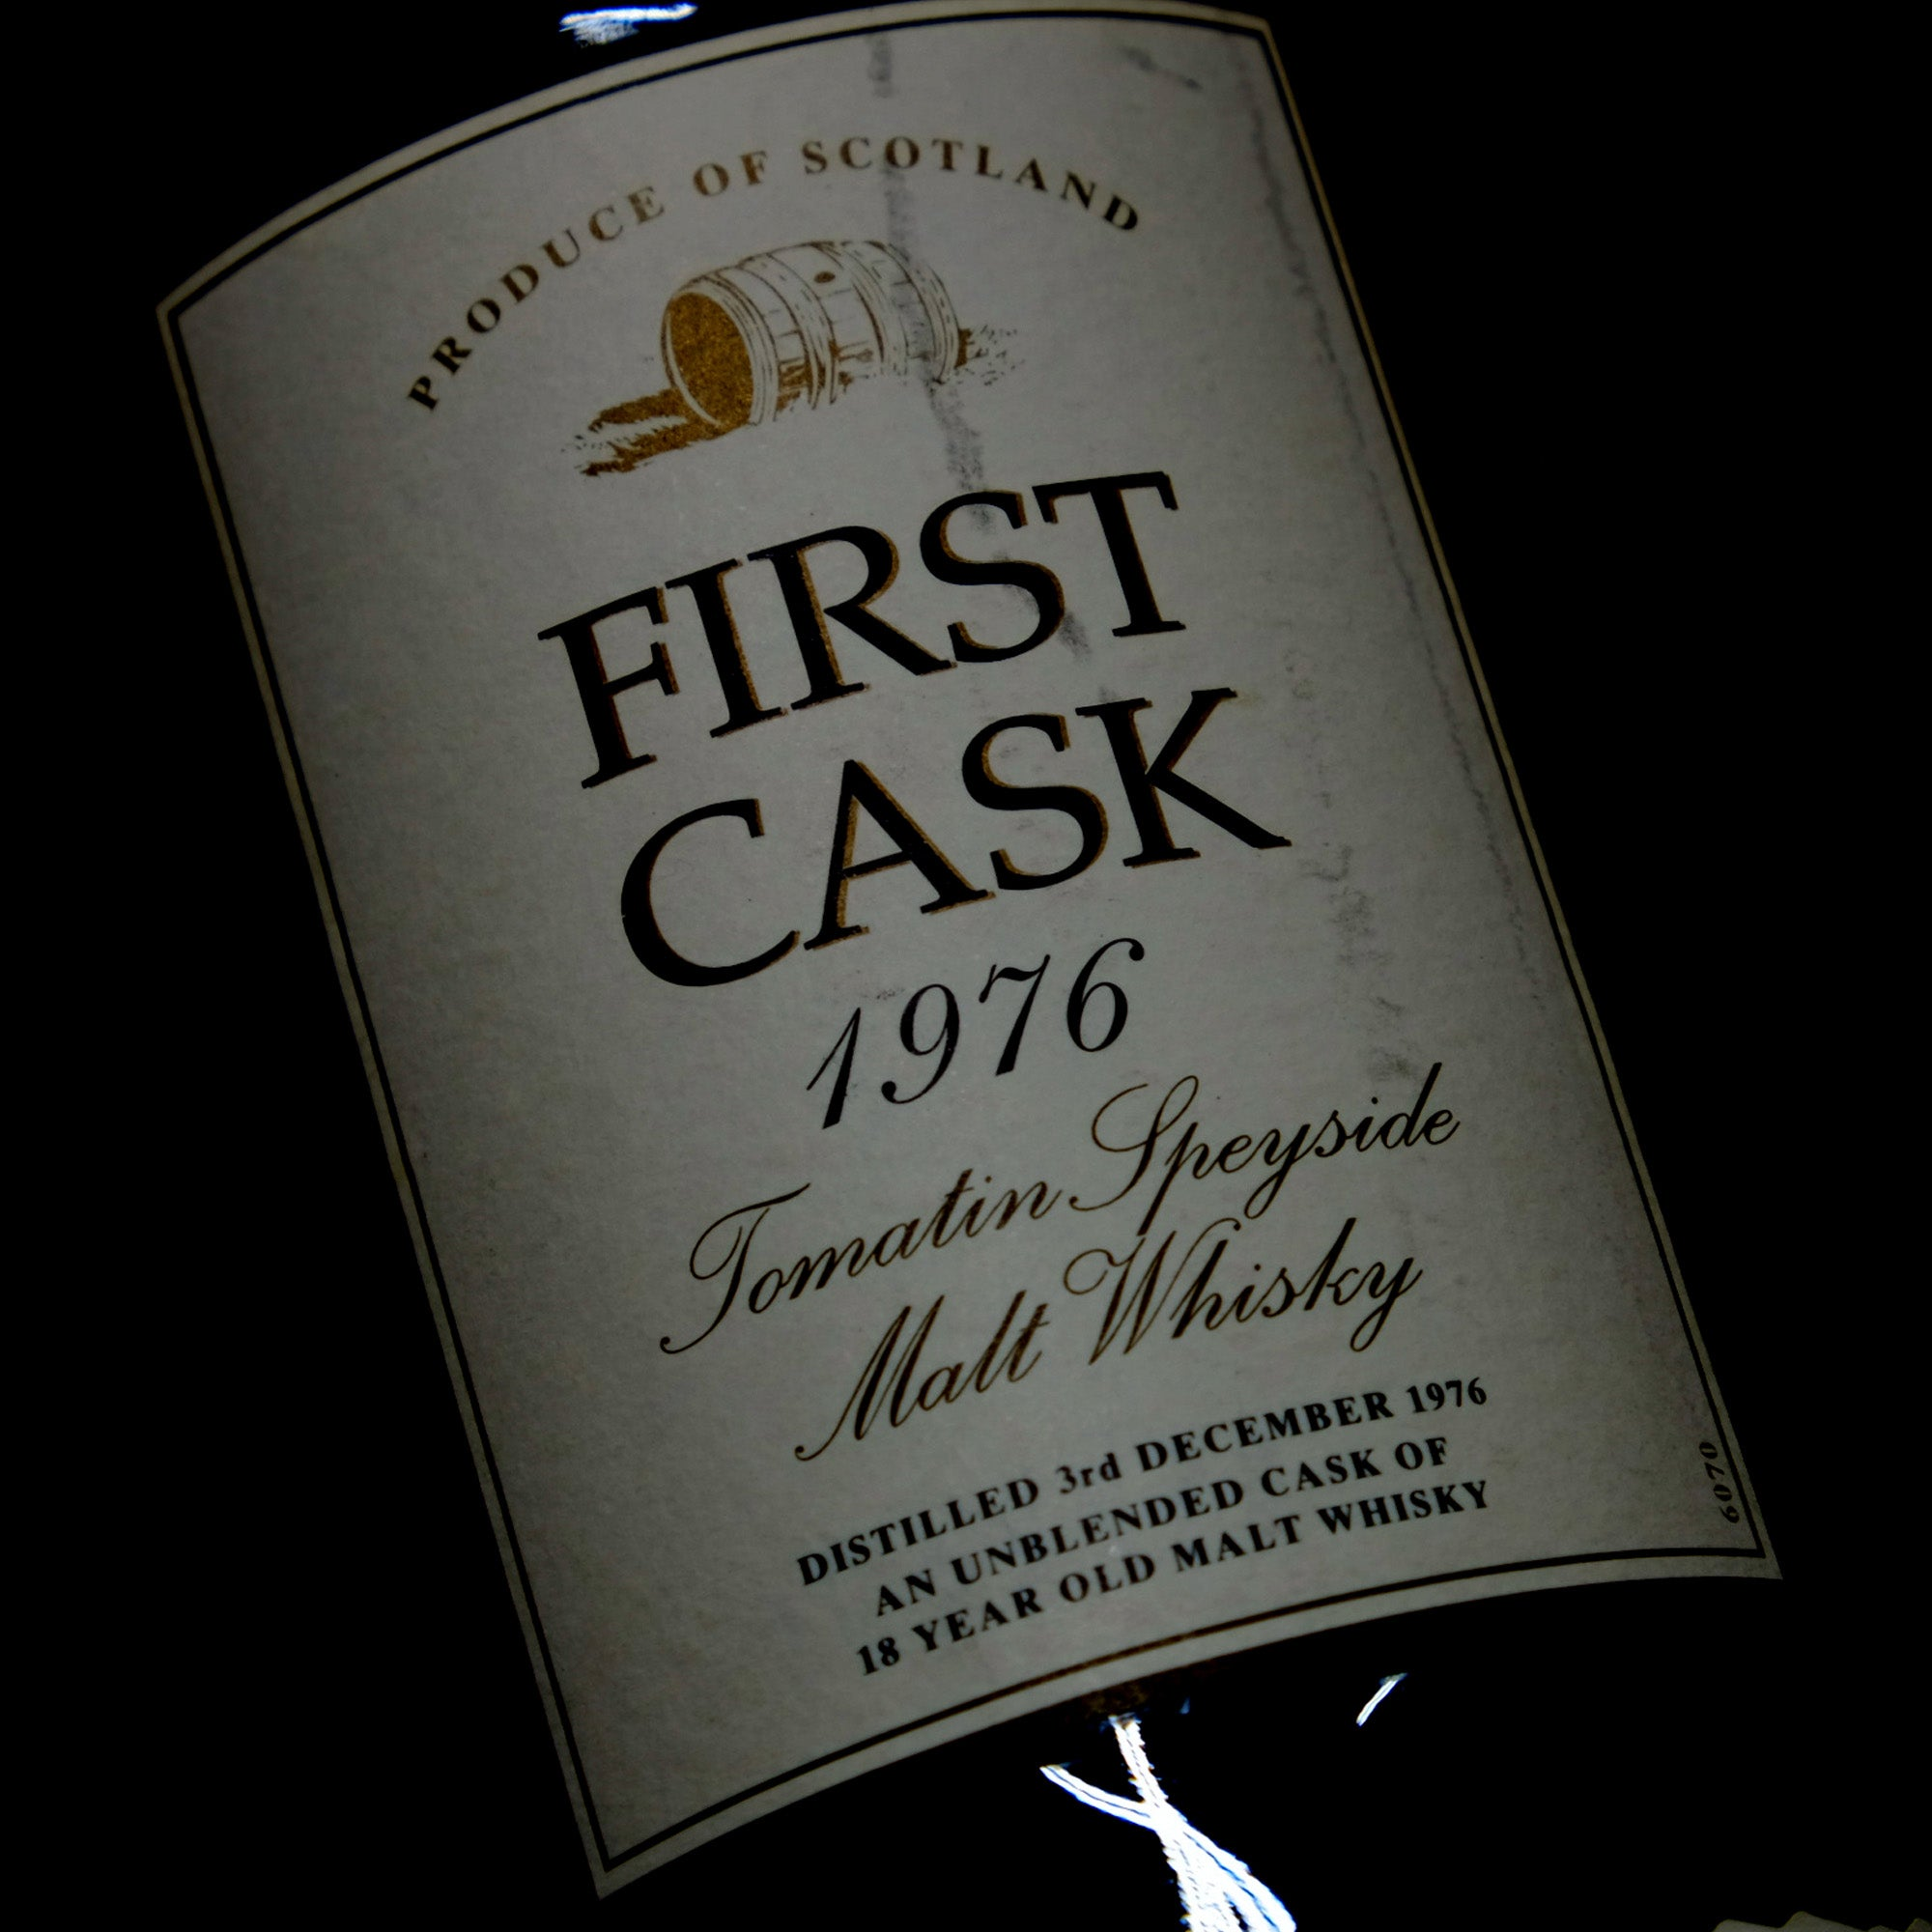 Part 2 'First Cask' Whisky Tasting - Old & Rare With Whisky-Online Auctions